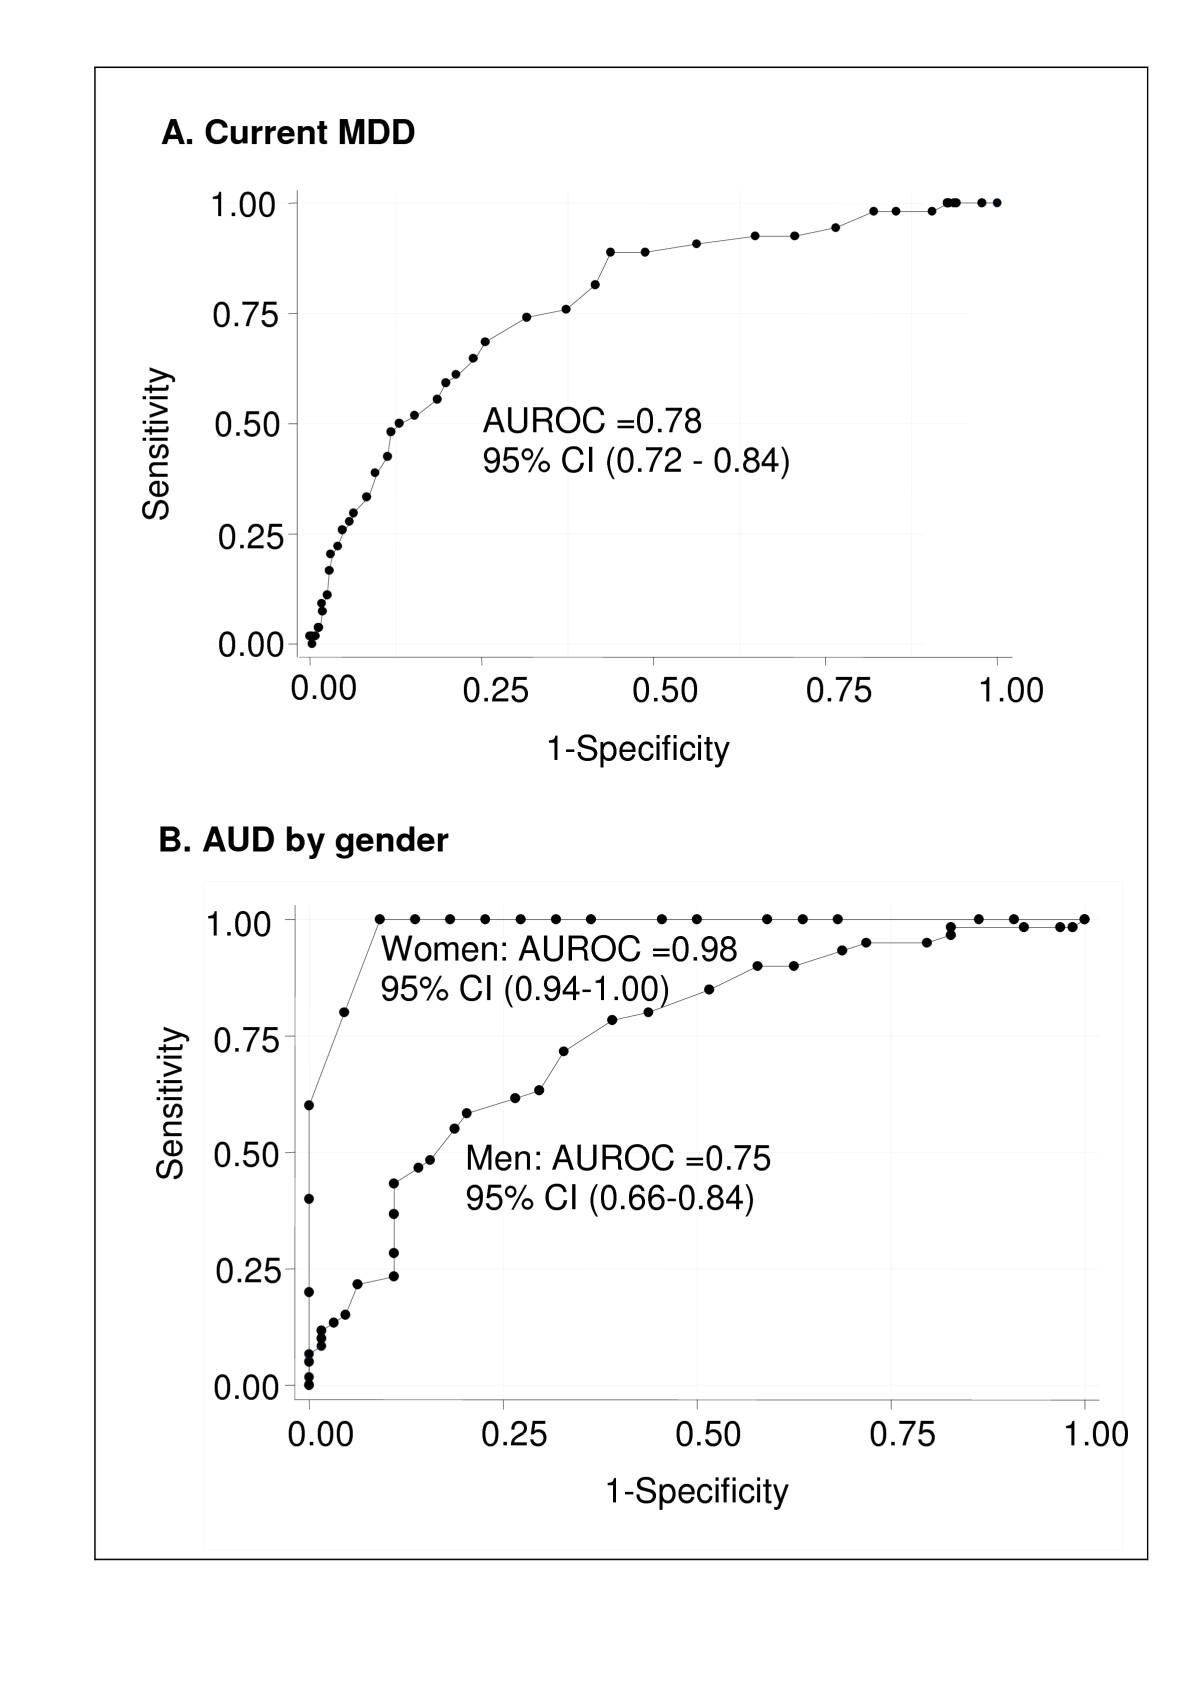 https://static-content.springer.com/image/art%3A10.1186%2F1471-244X-11-75/MediaObjects/12888_2011_Article_815_Fig2_HTML.jpg